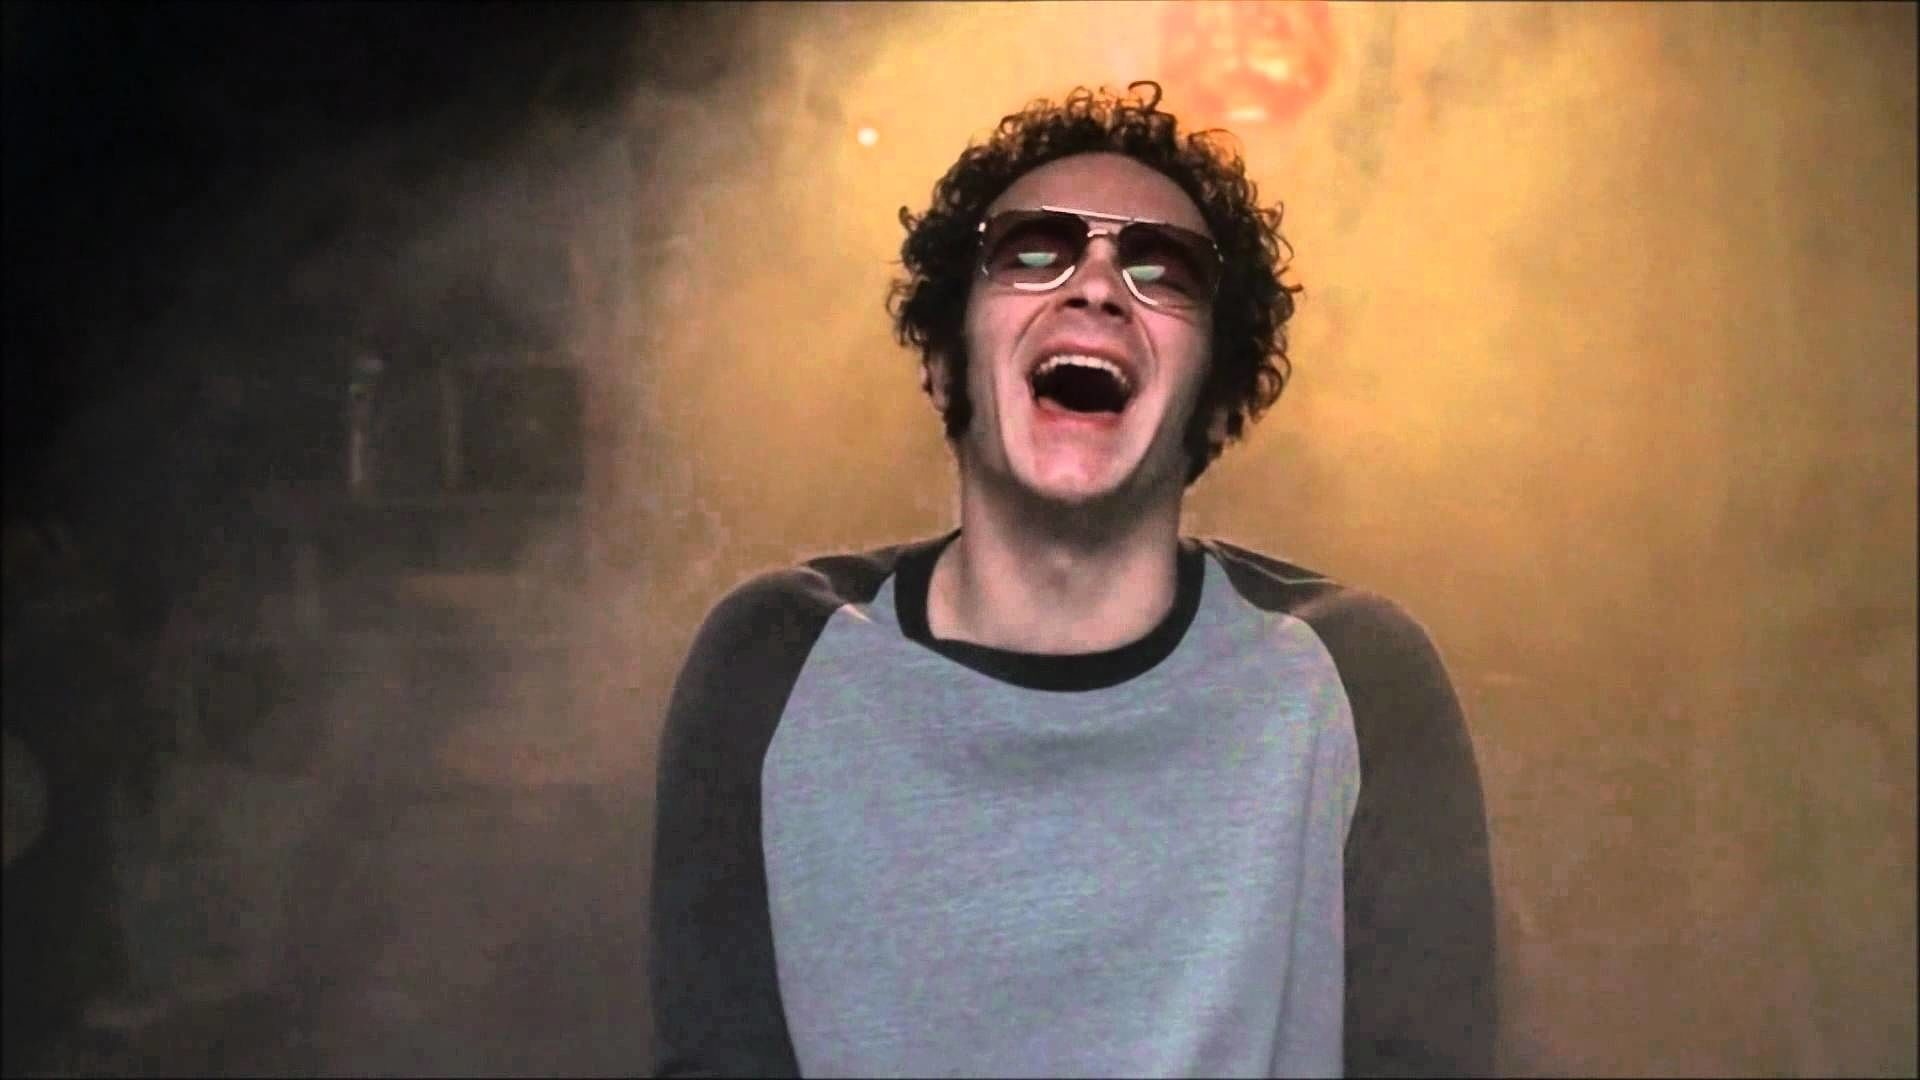 1920x1080 Danny Masterson as Steven Hyde. That 70s Show Characters, Movies And Tv  Shows,